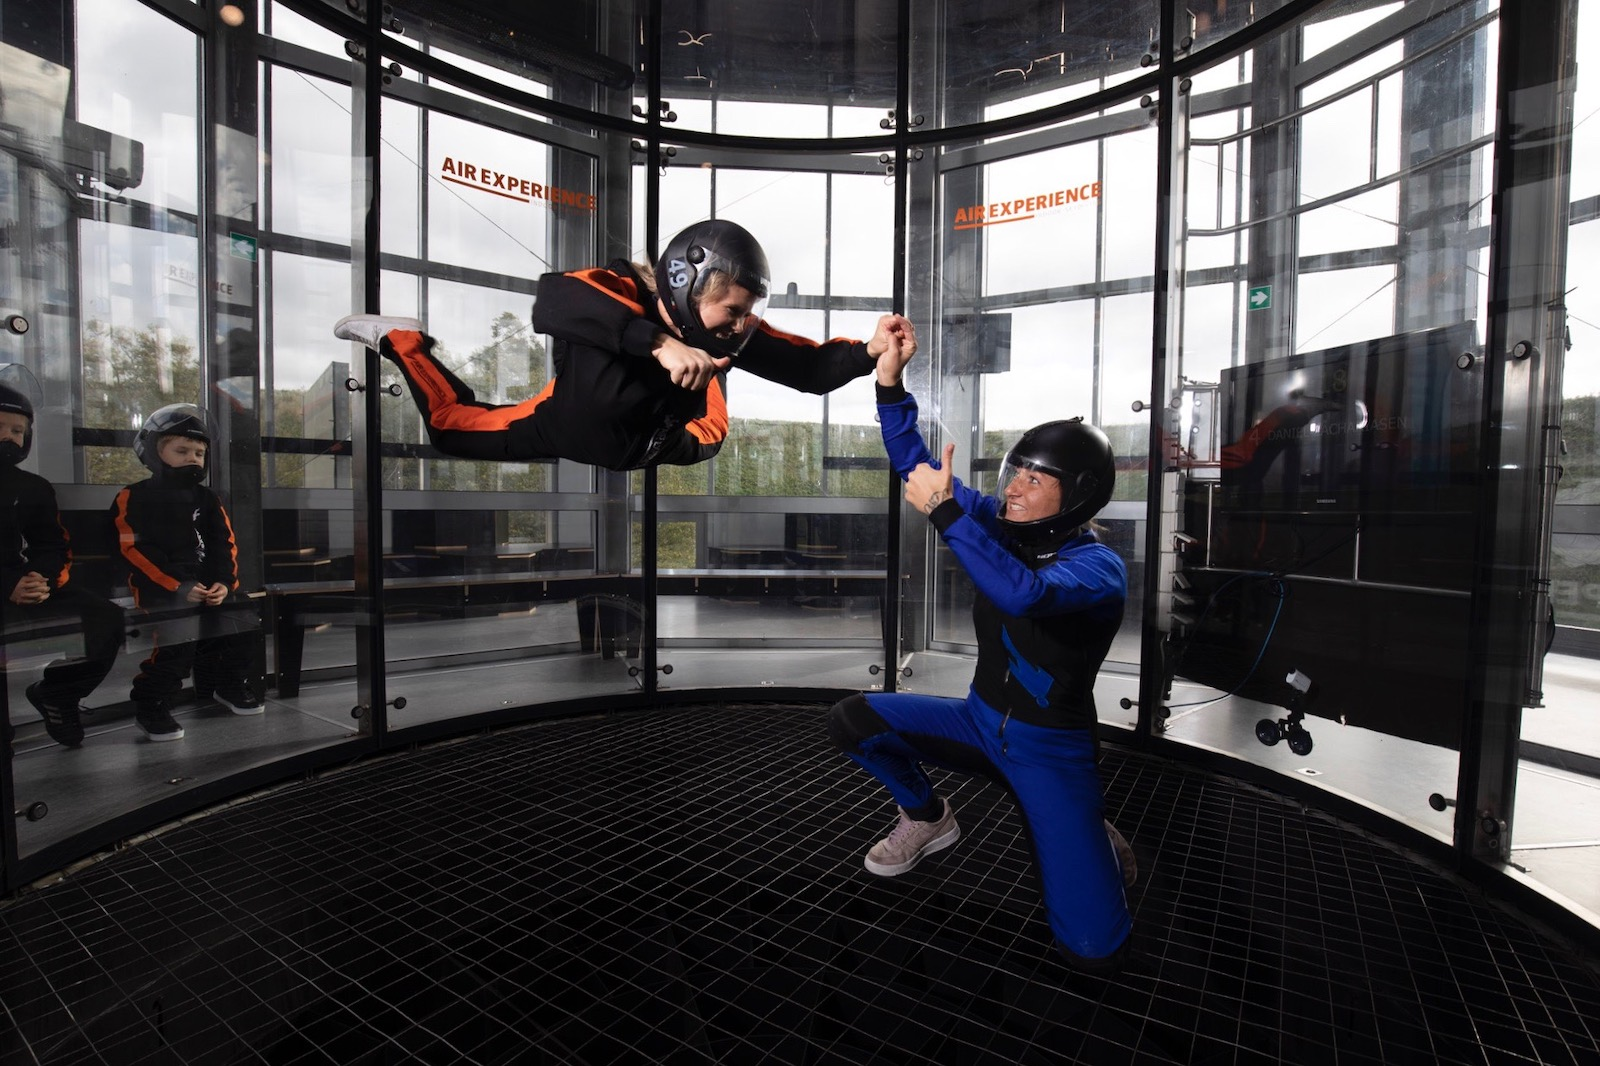 The indoor skydiving experience at Copenhagen Air Experience